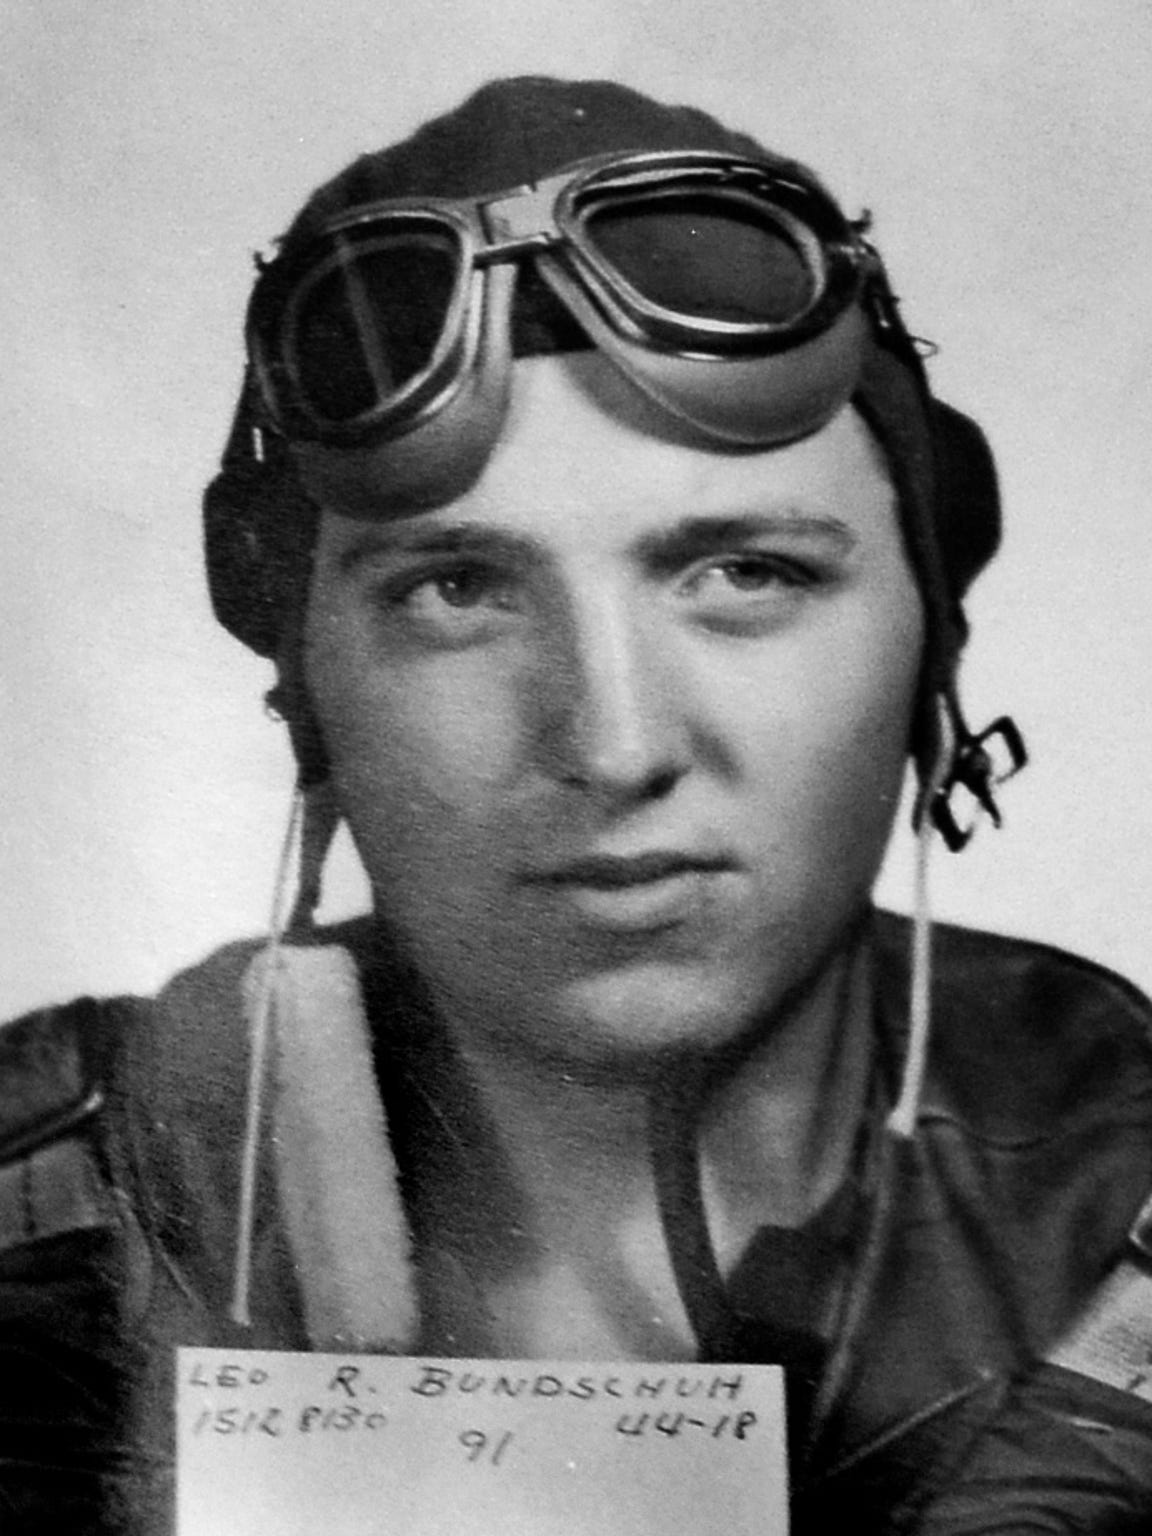 During WWII, Leo Bundschuh served in 37 bombing missions